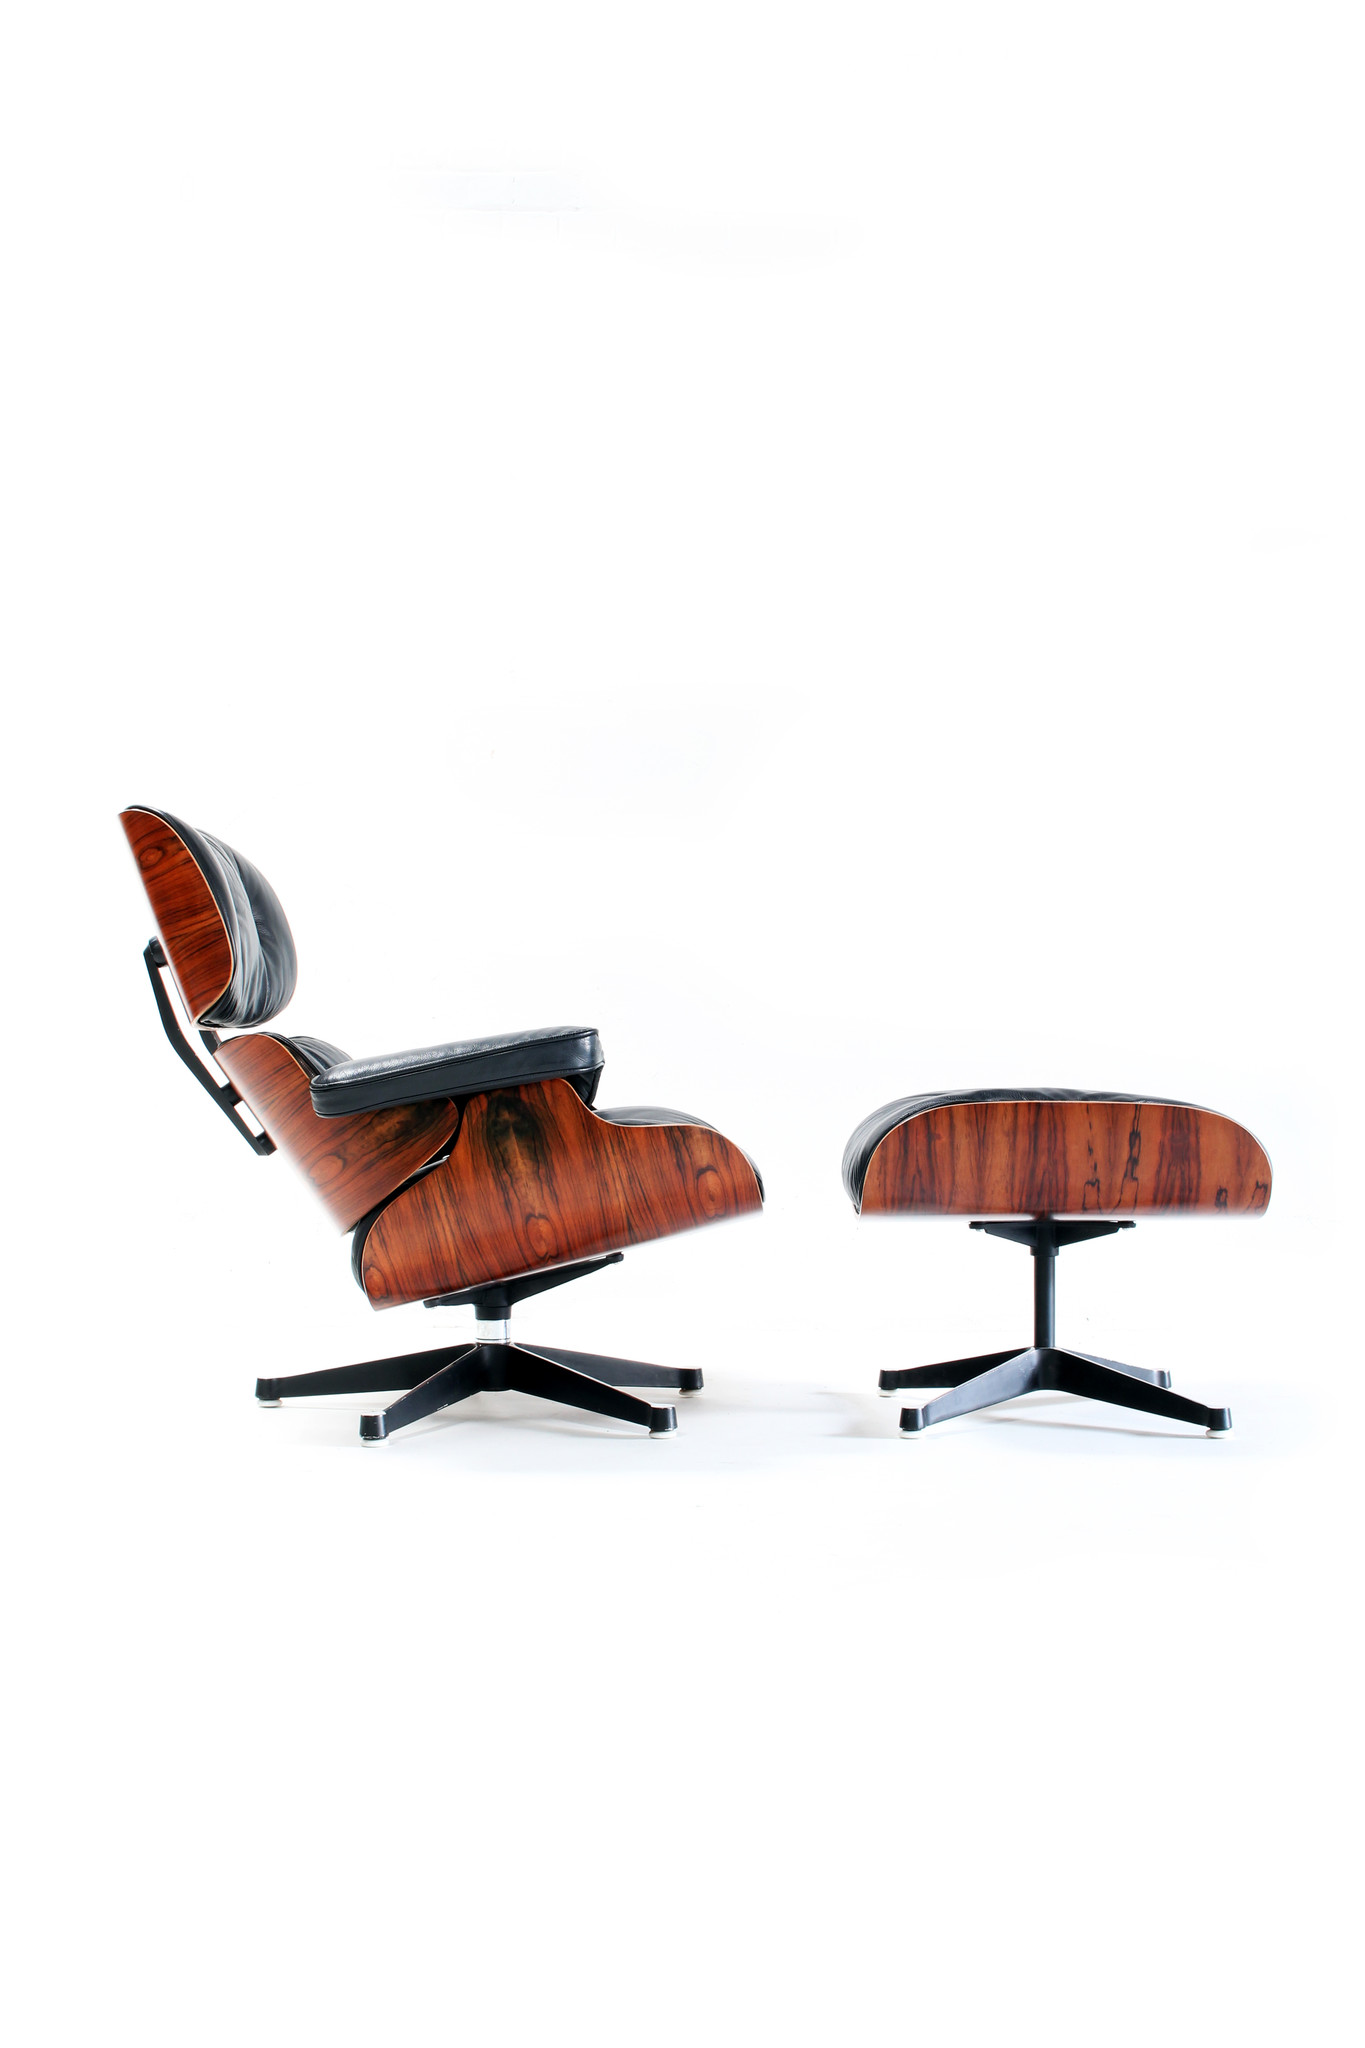 Eames Replica Lounge Stoel.Eames Lounge Chair With Ottoman By Charles Ray Eames Wauwshop